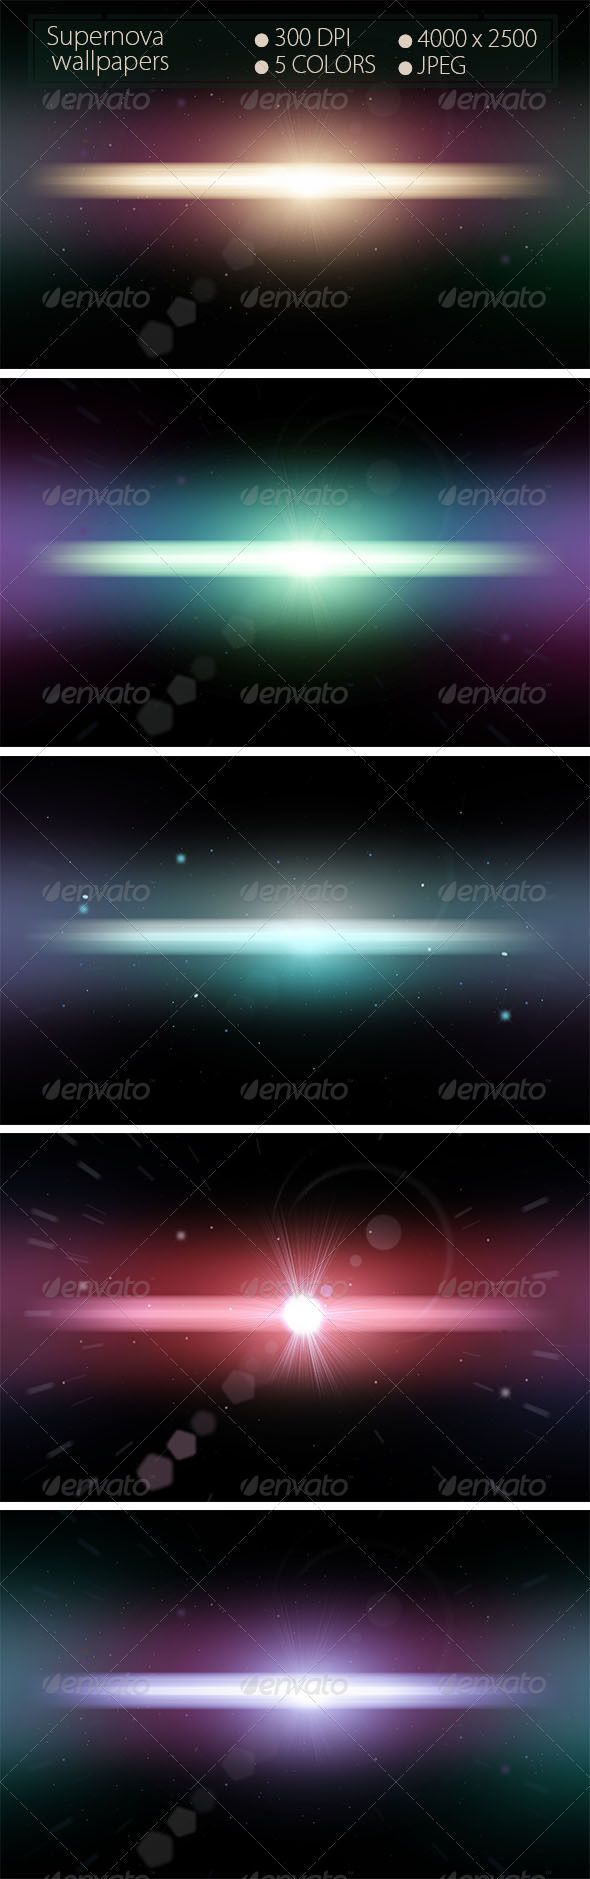 Supernova Backgrounds  #GraphicRiver          Supernova Wallpapers  - 5 Colors  - 4000×2500 Pixels  - 300 DPI  - JPEG                     Created: 12 December 13                    Graphics Files Included:   JPG Image                   High Resolution:   Yes                   Layered:   No                   Pixel Dimensions:   4000x2500                   Print Dimensions:   4000x2500             Tags      blur #blured #cosmic #dark #hd #hd wallpapers #hq #space #supernova #wallpapers #walls